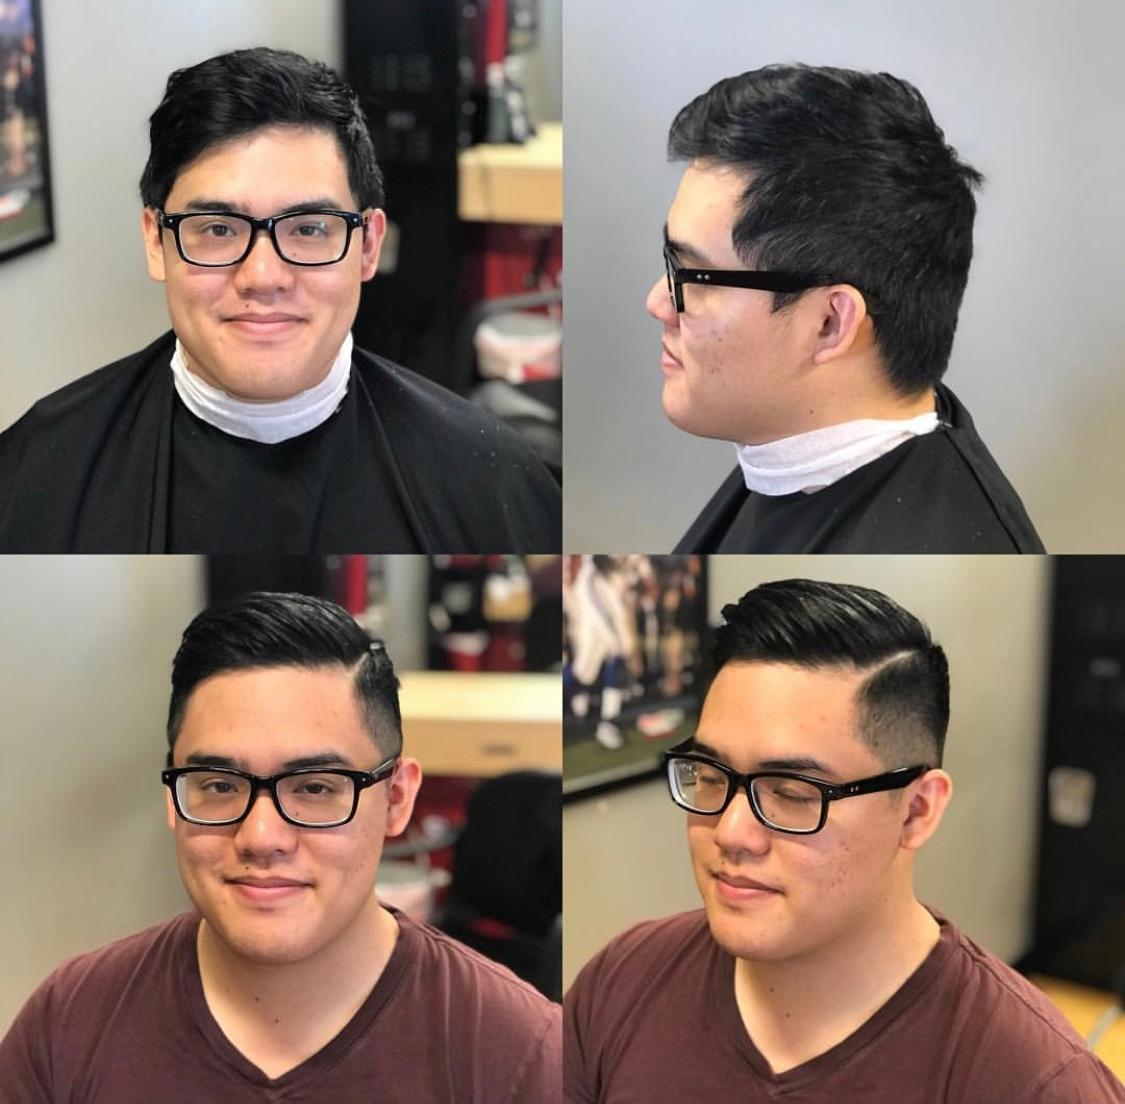 Sport Clips Haircuts of New Port Richey image 23